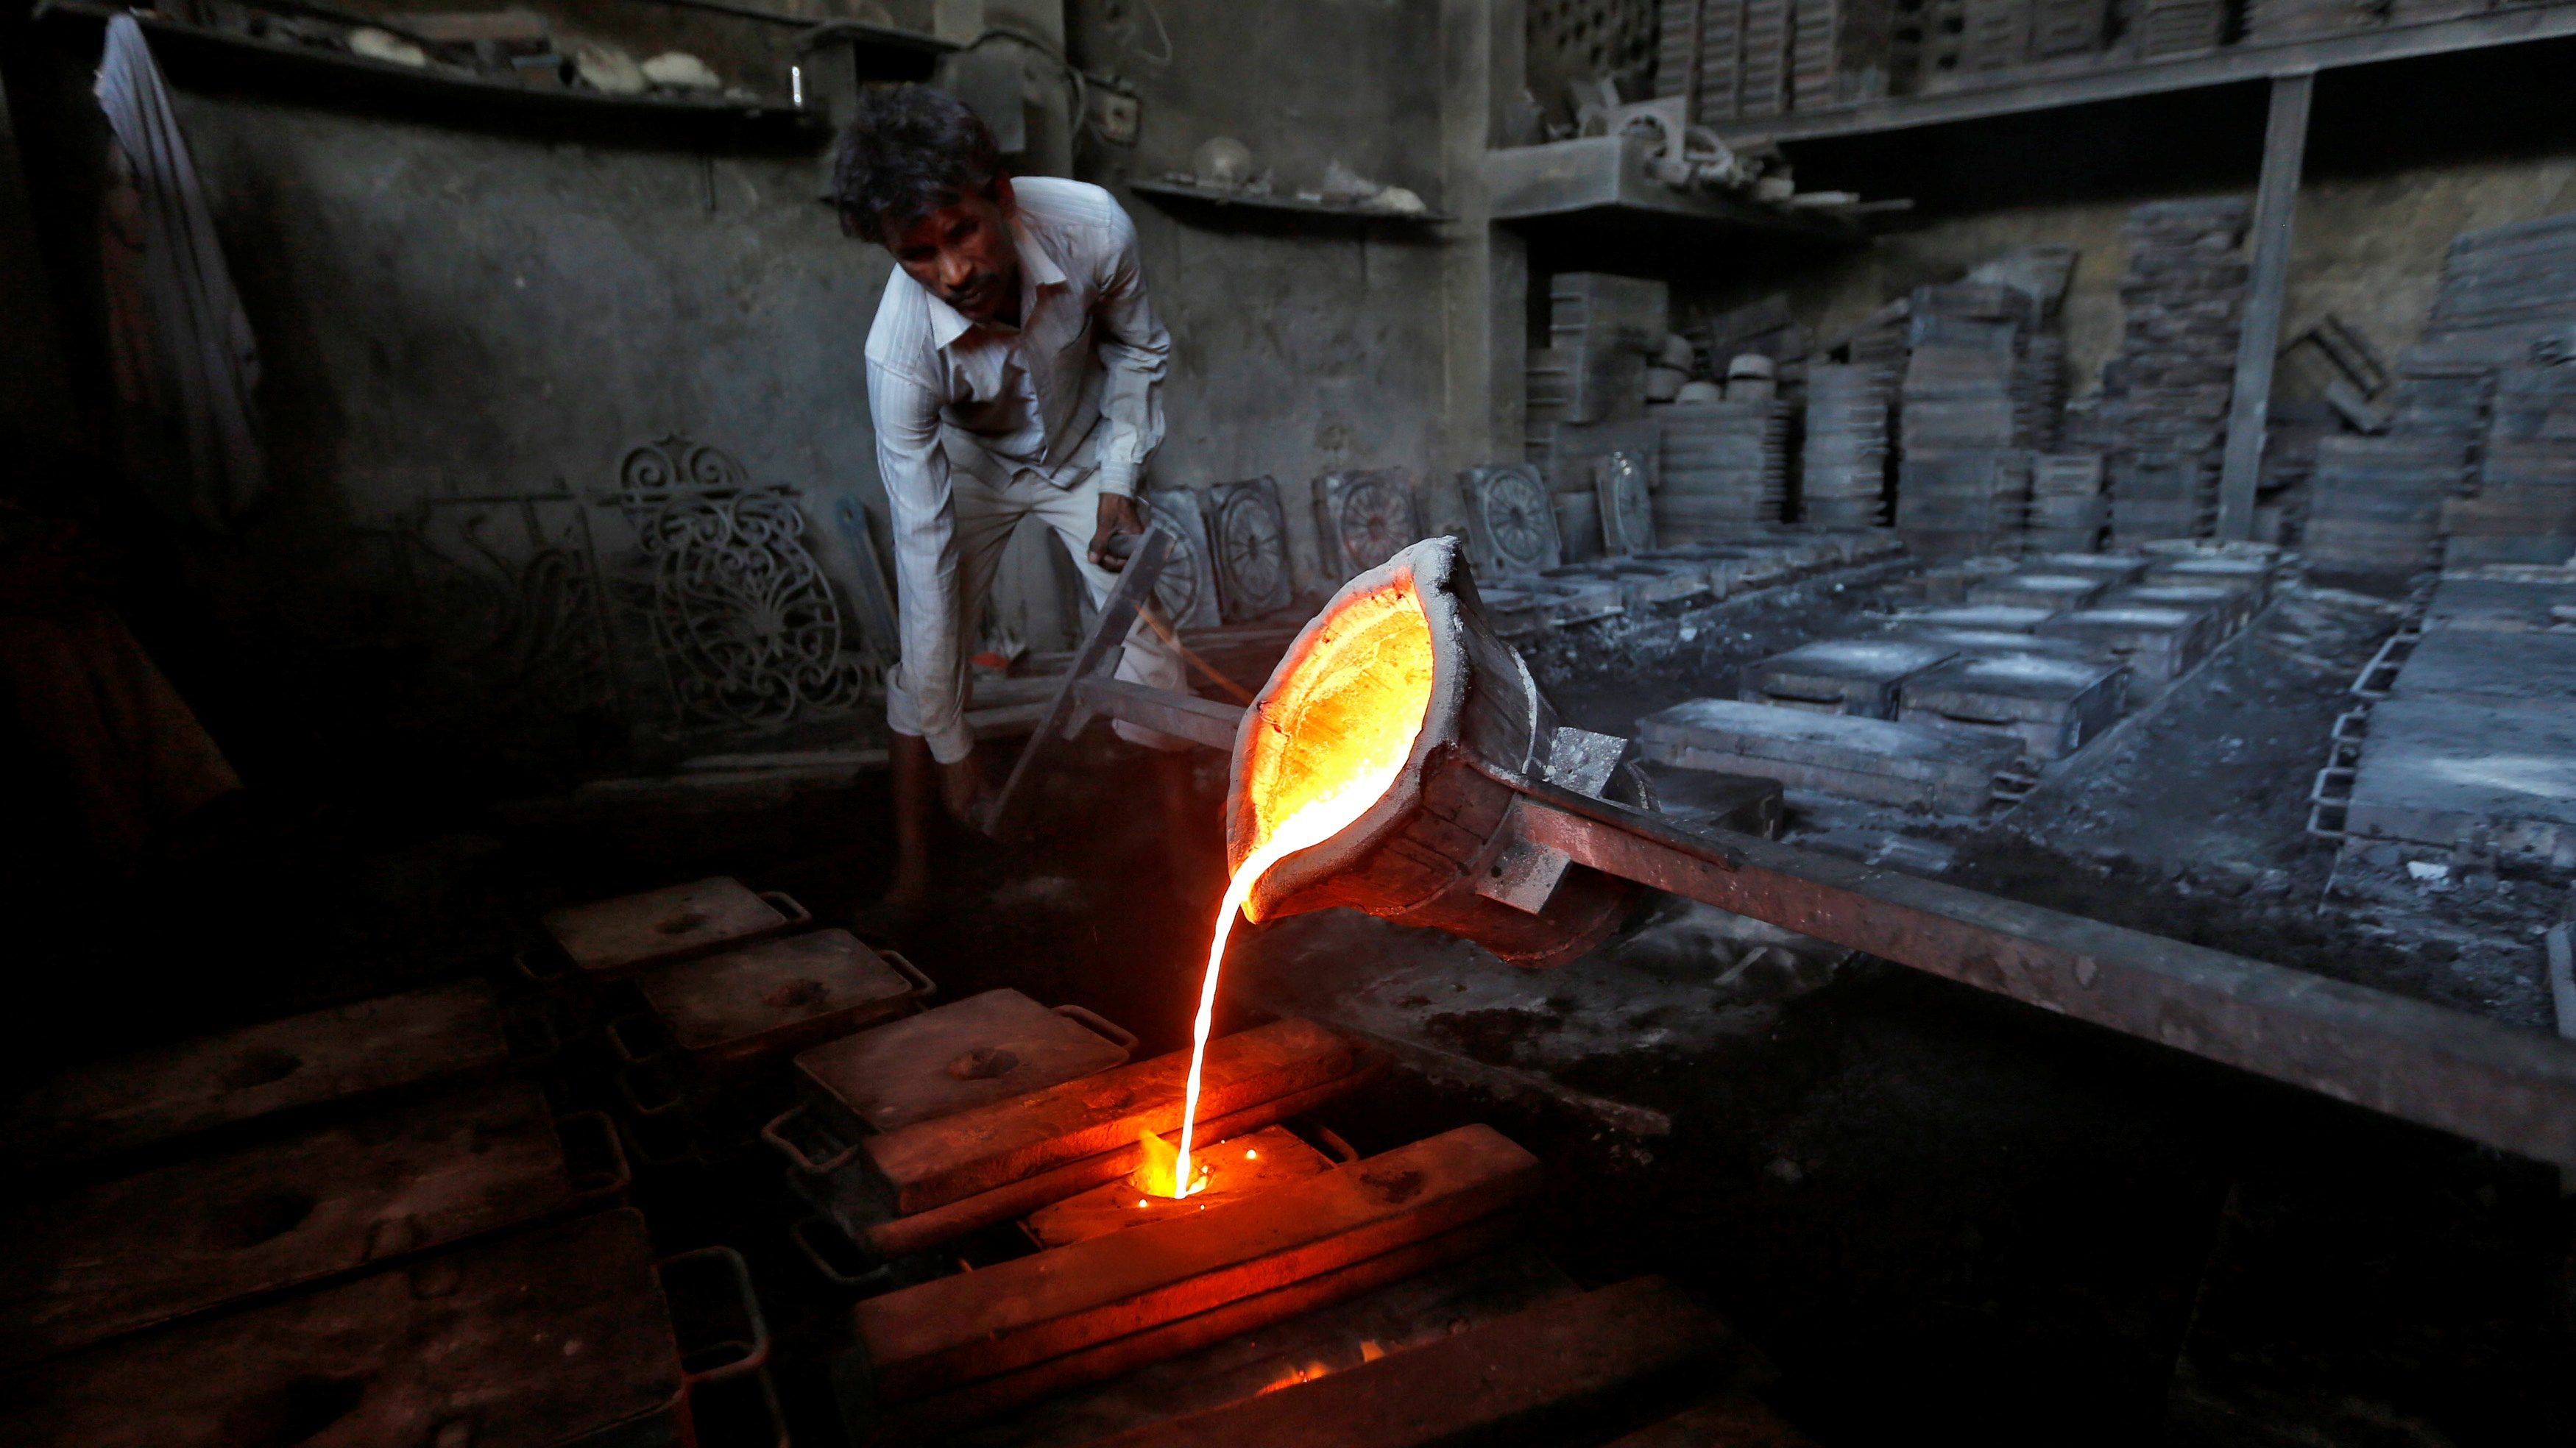 A worker pours molten iron from a ladle to make lamp posts inside an iron casting factory in Ahmedabad